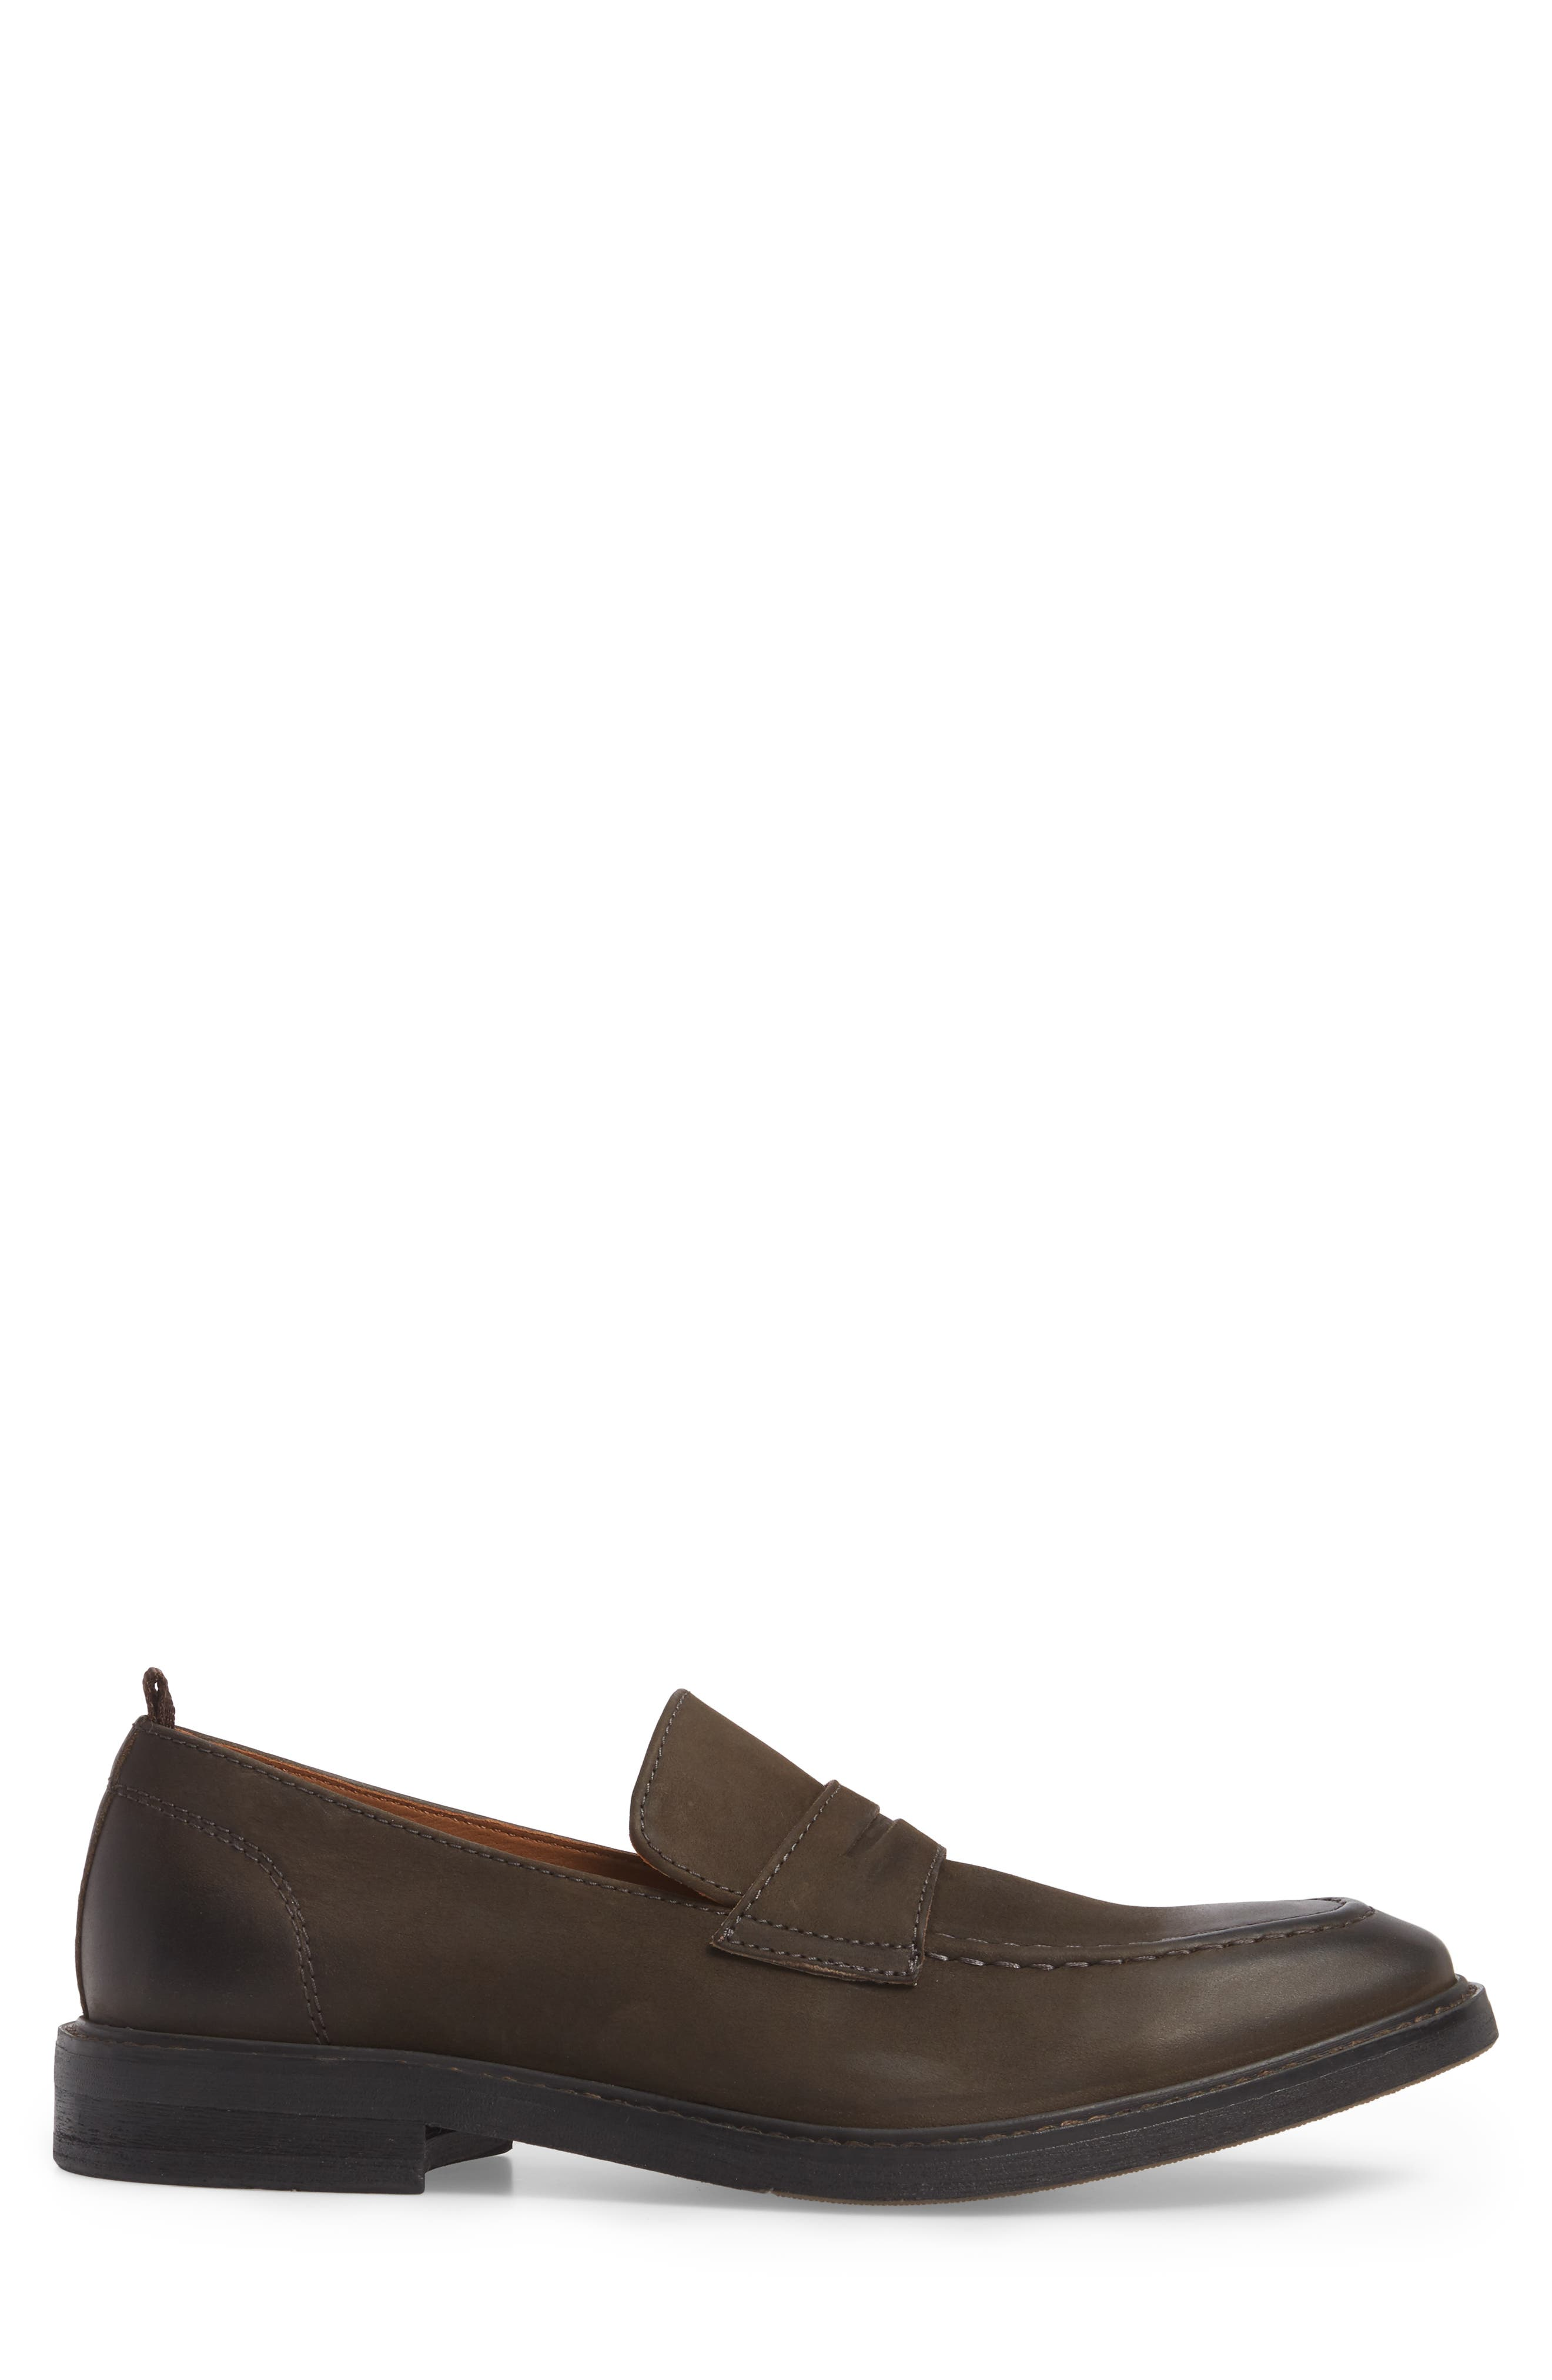 Harrington Penny Loafer,                             Alternate thumbnail 3, color,                             Chocolate Leather